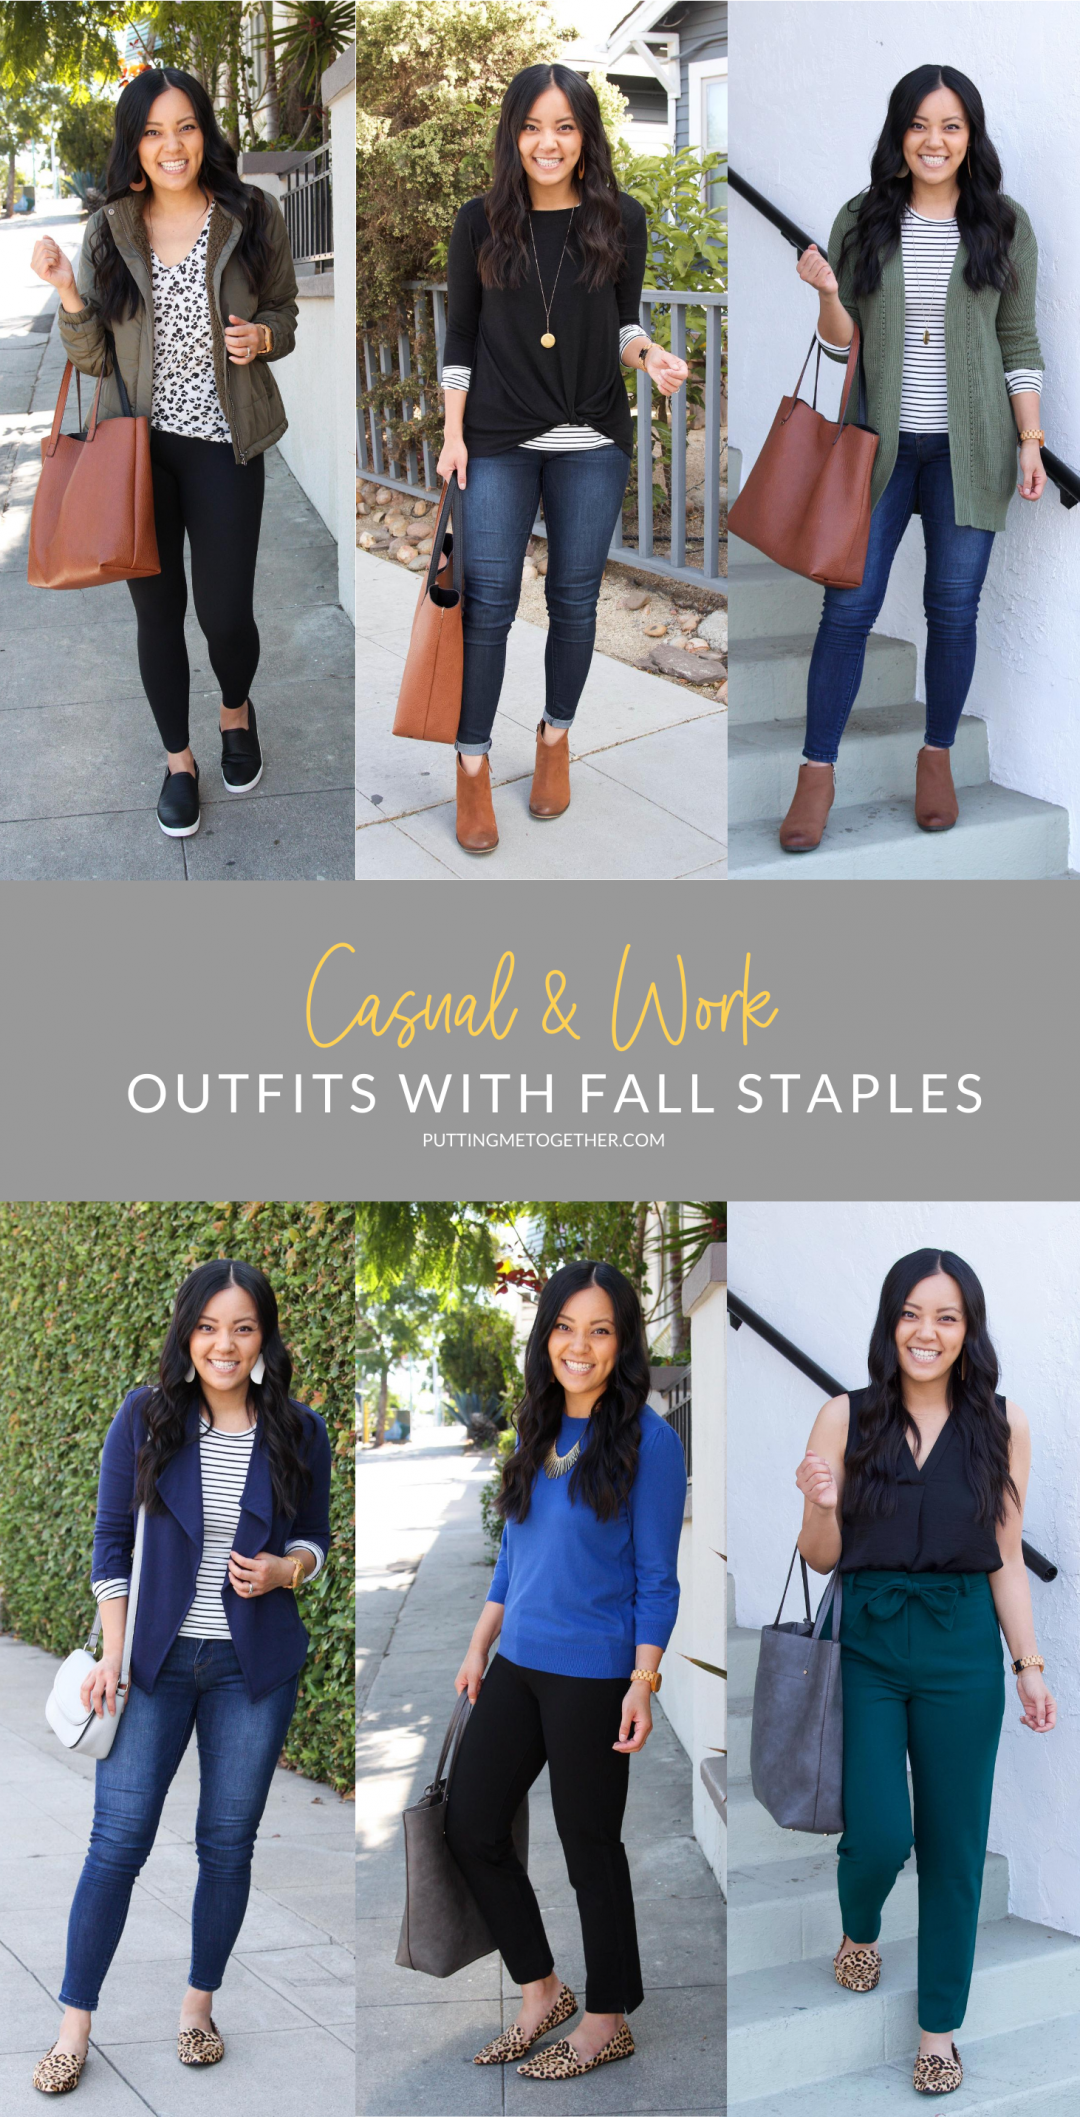 Fall Staples for Casual and Work Outfits